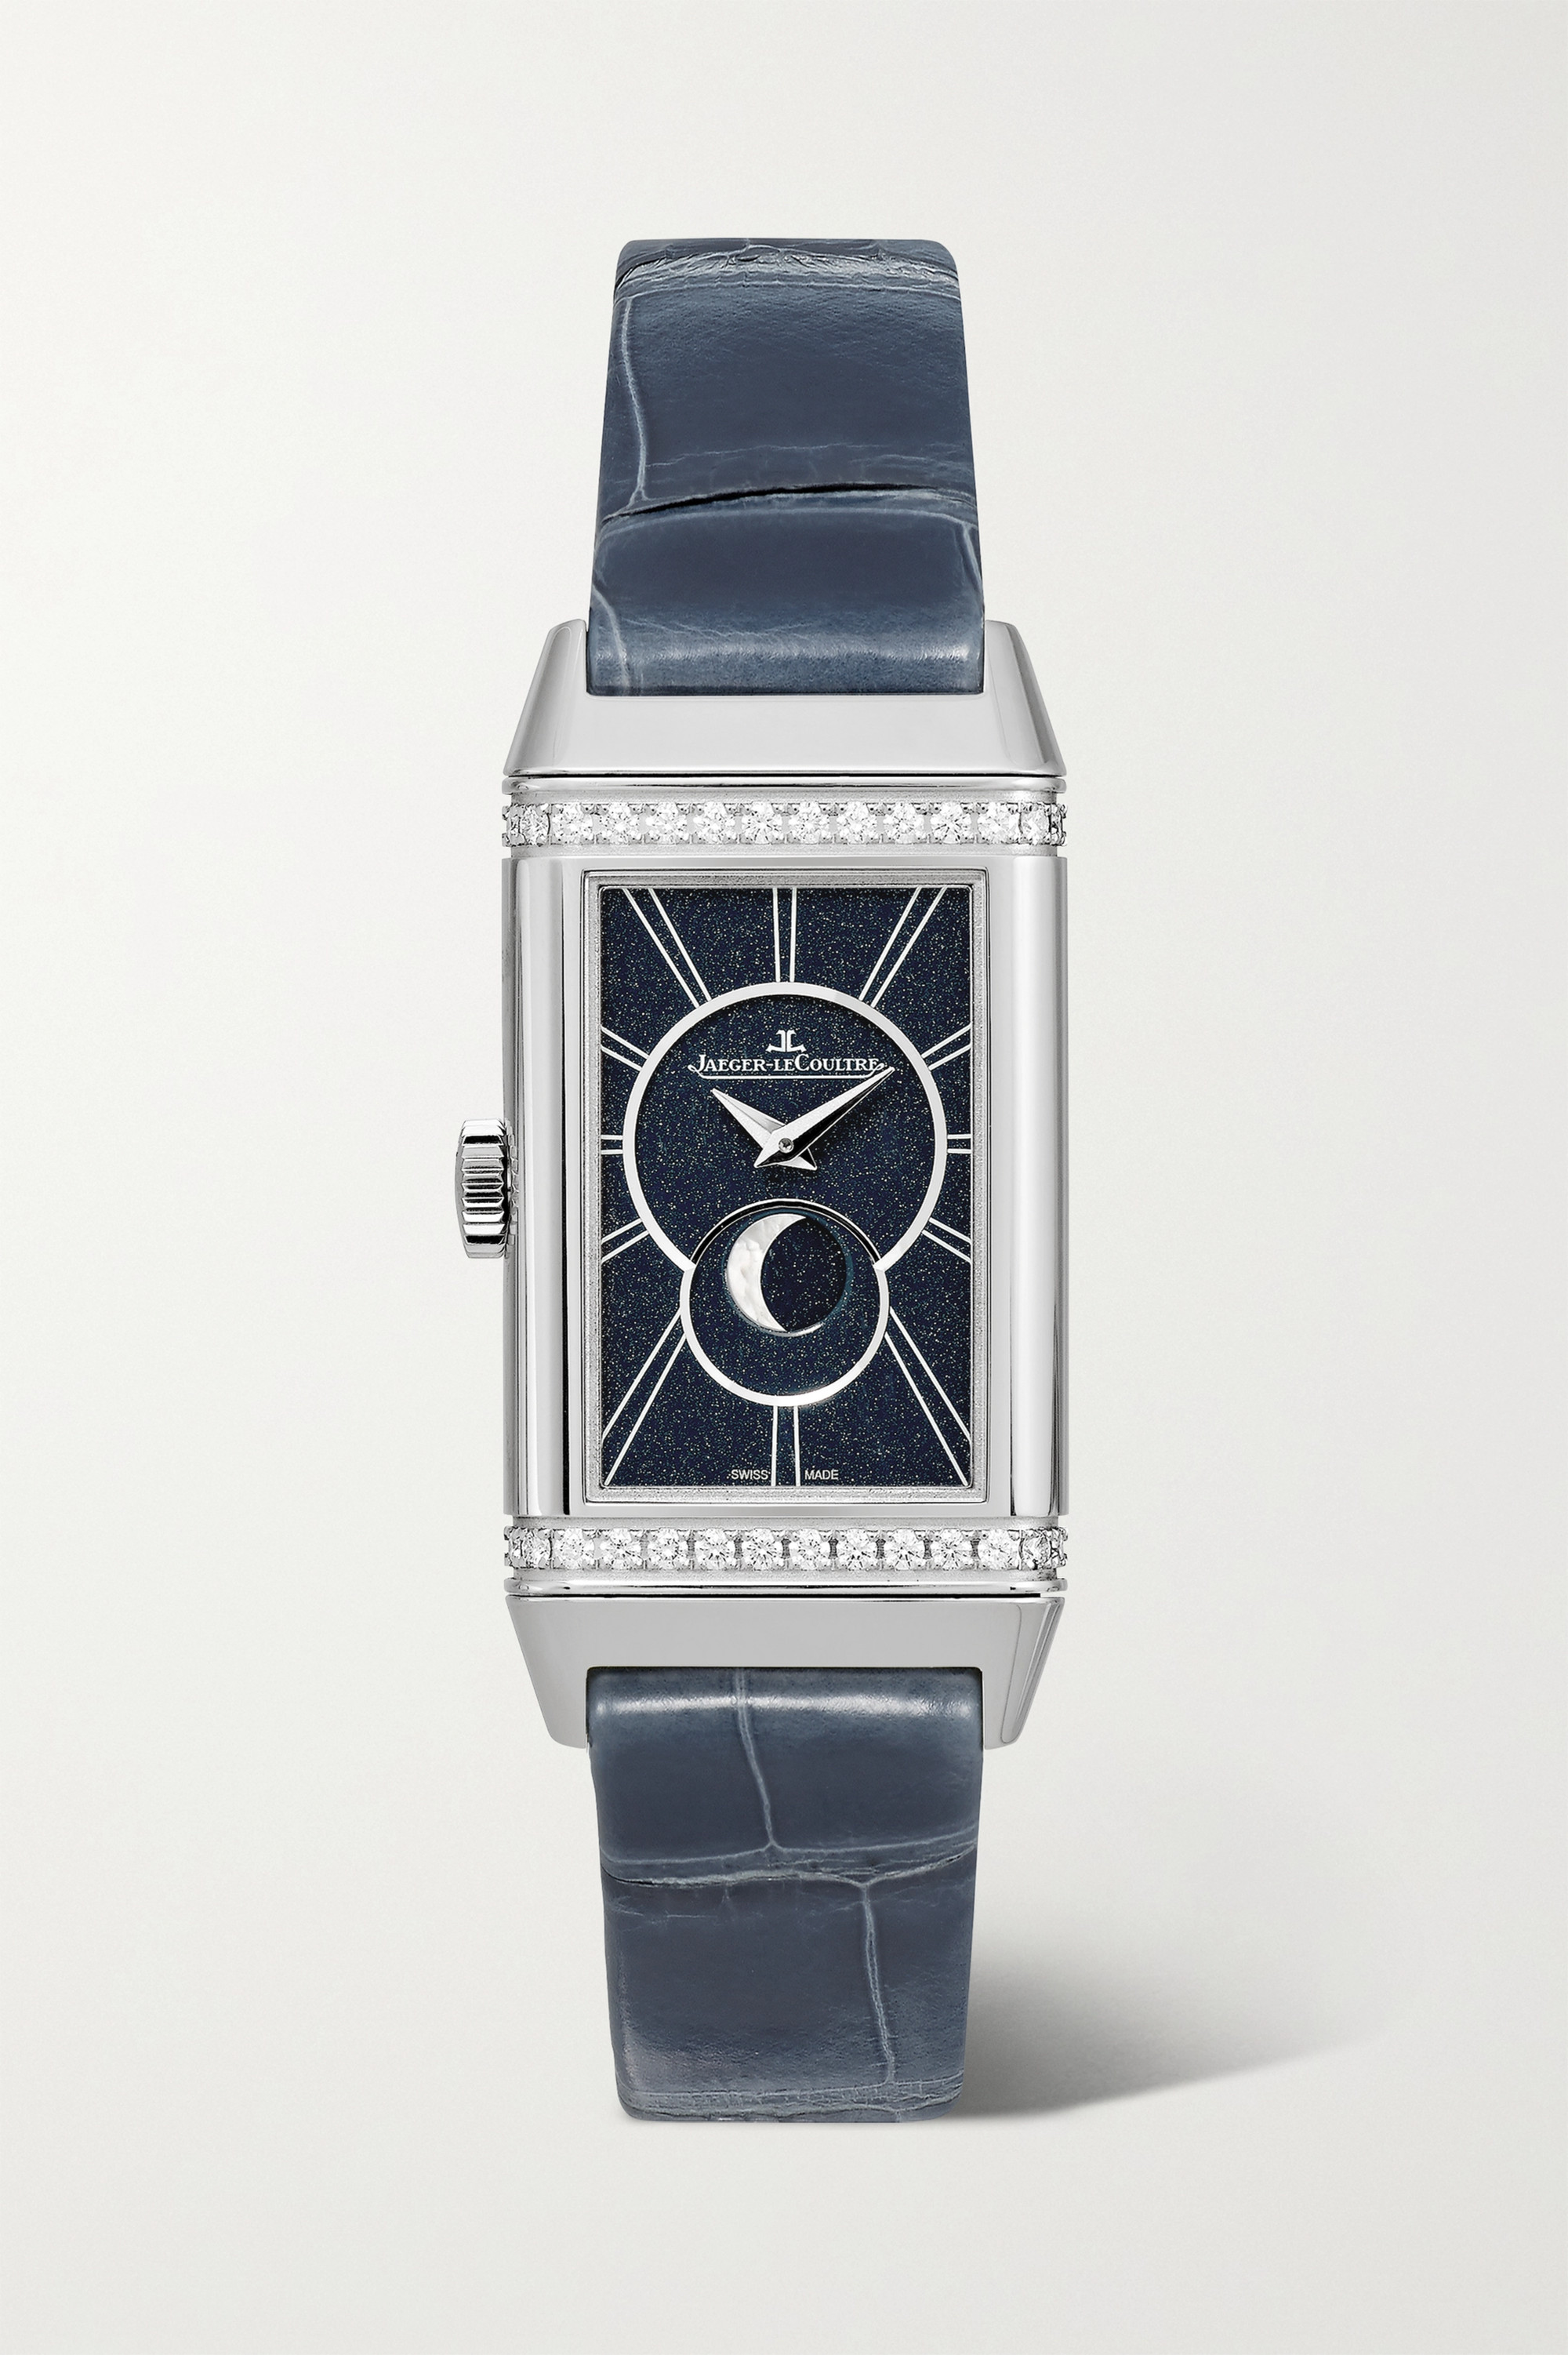 Jaeger-LeCoultre Reverso One Duetto Moon Hand-Wound Moon-Phase 20mm stainless steel, alligator and diamond watch